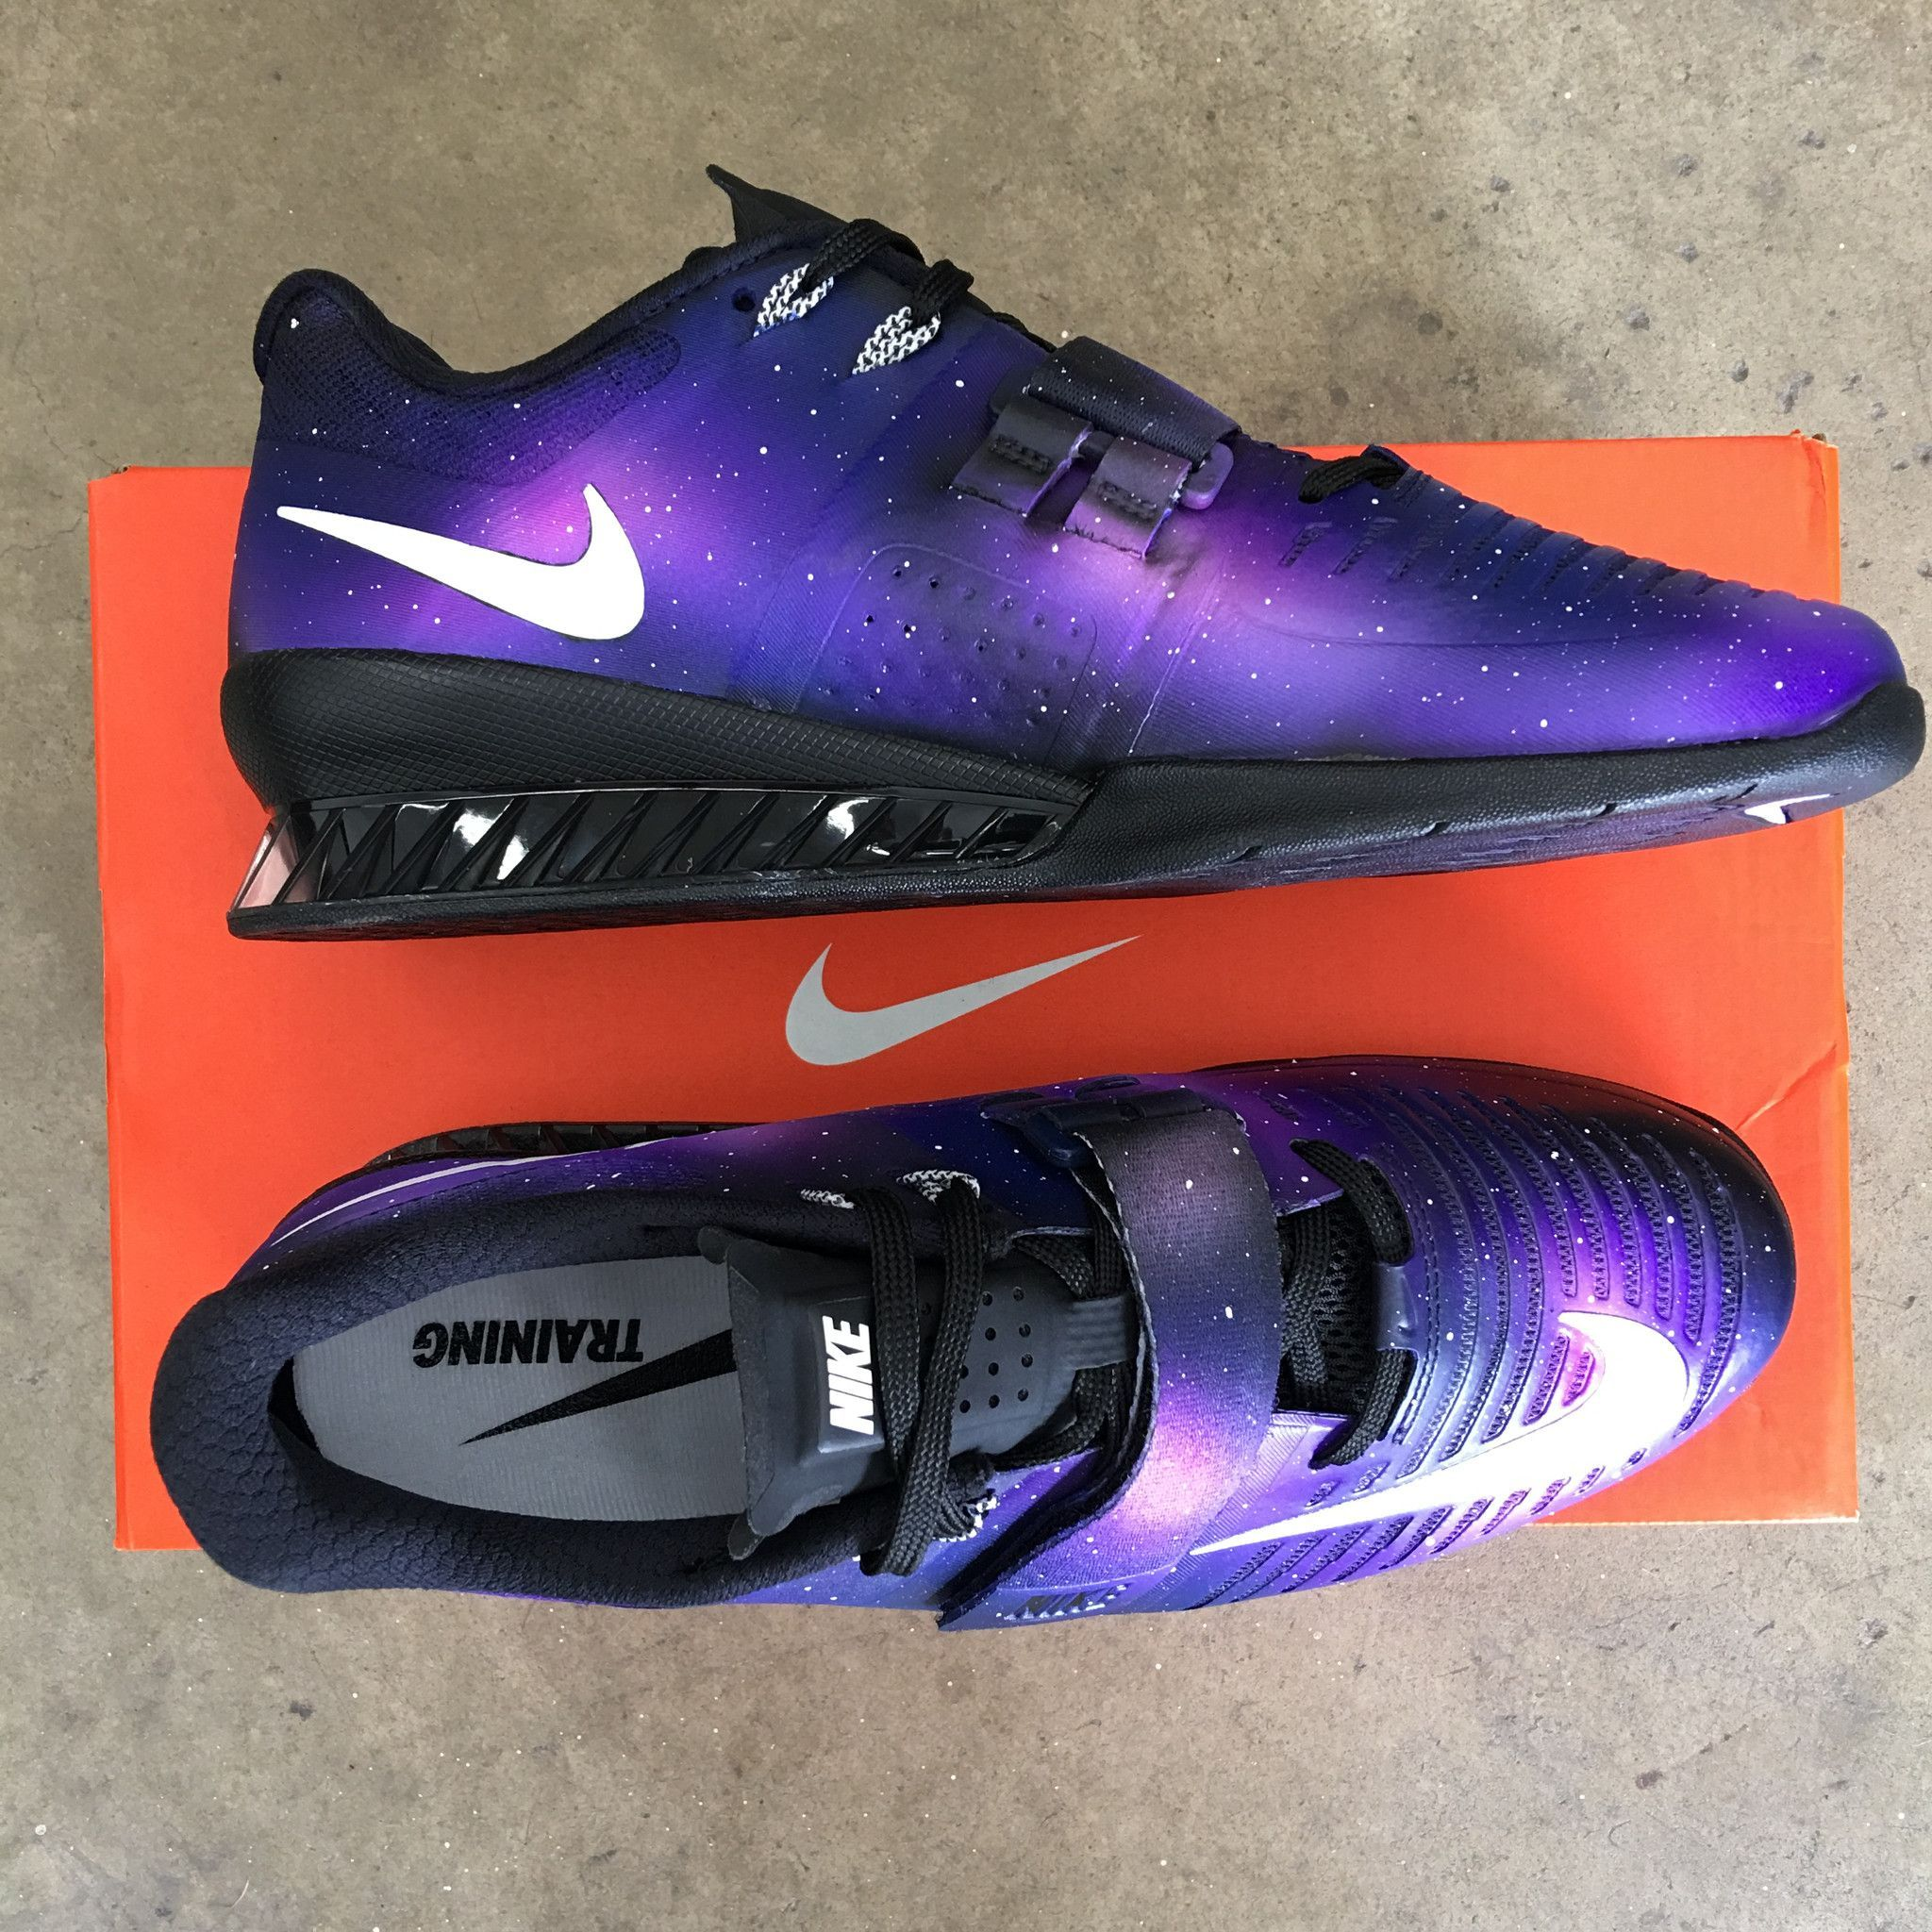 on sale f2371 90cbd These custom hand painted Nike Romaleos 3 Weightlifting Shoes have been hand  painted with purple galaxy theme. These custom Lifters have combinations of  ...